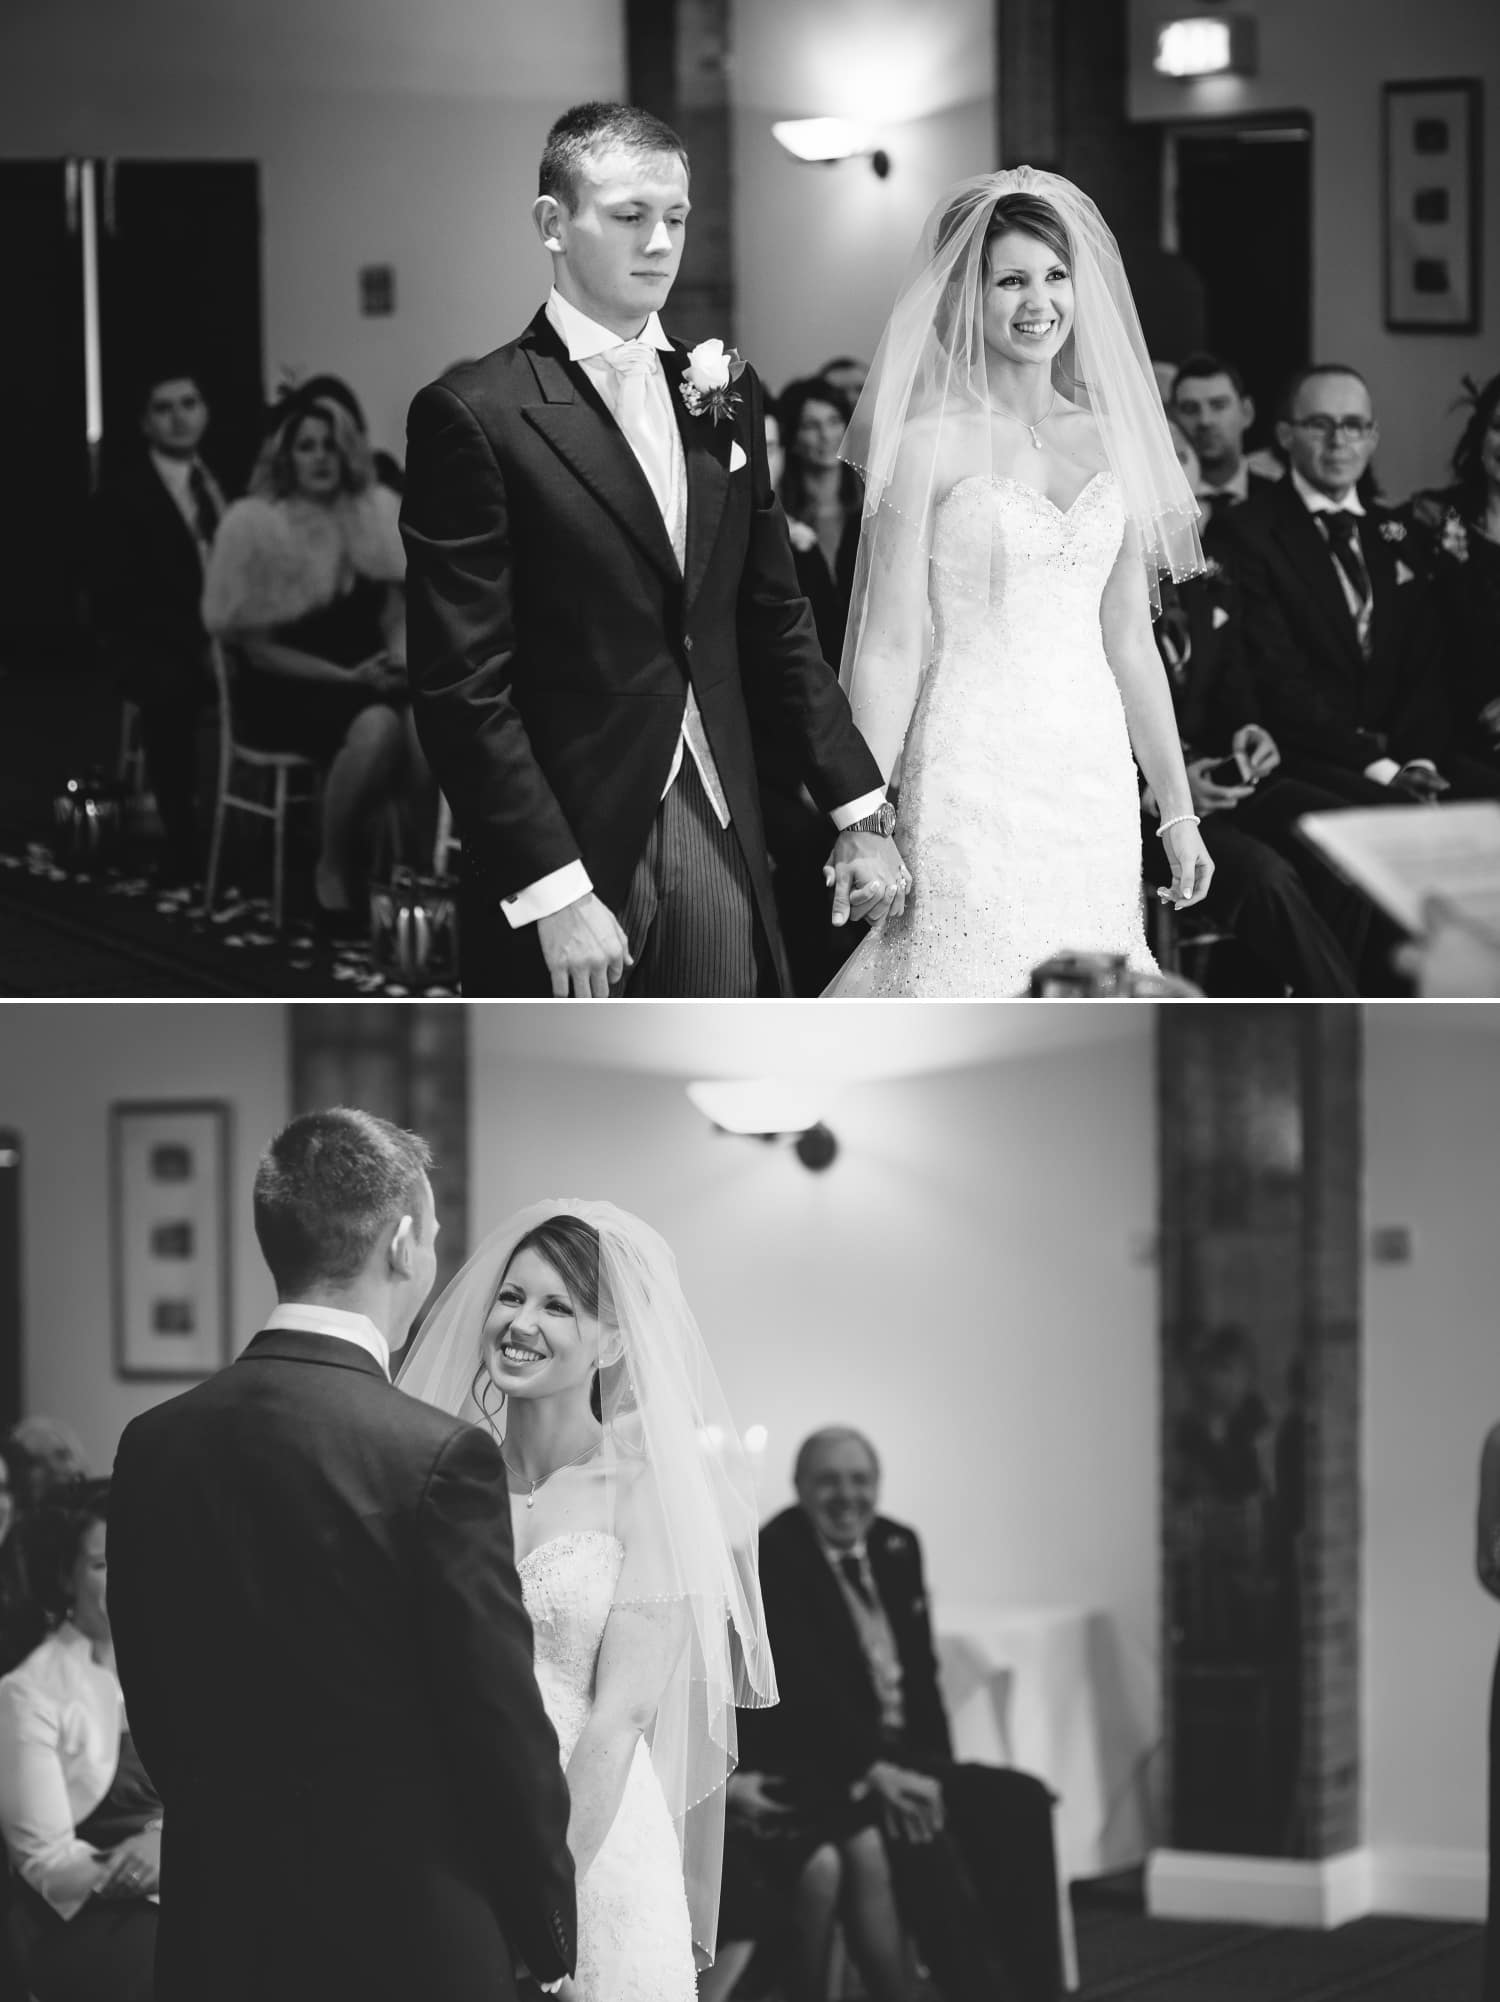 Wedding photography of the wedding ceremony at Carden Park Hotel, Chester, Cheshire